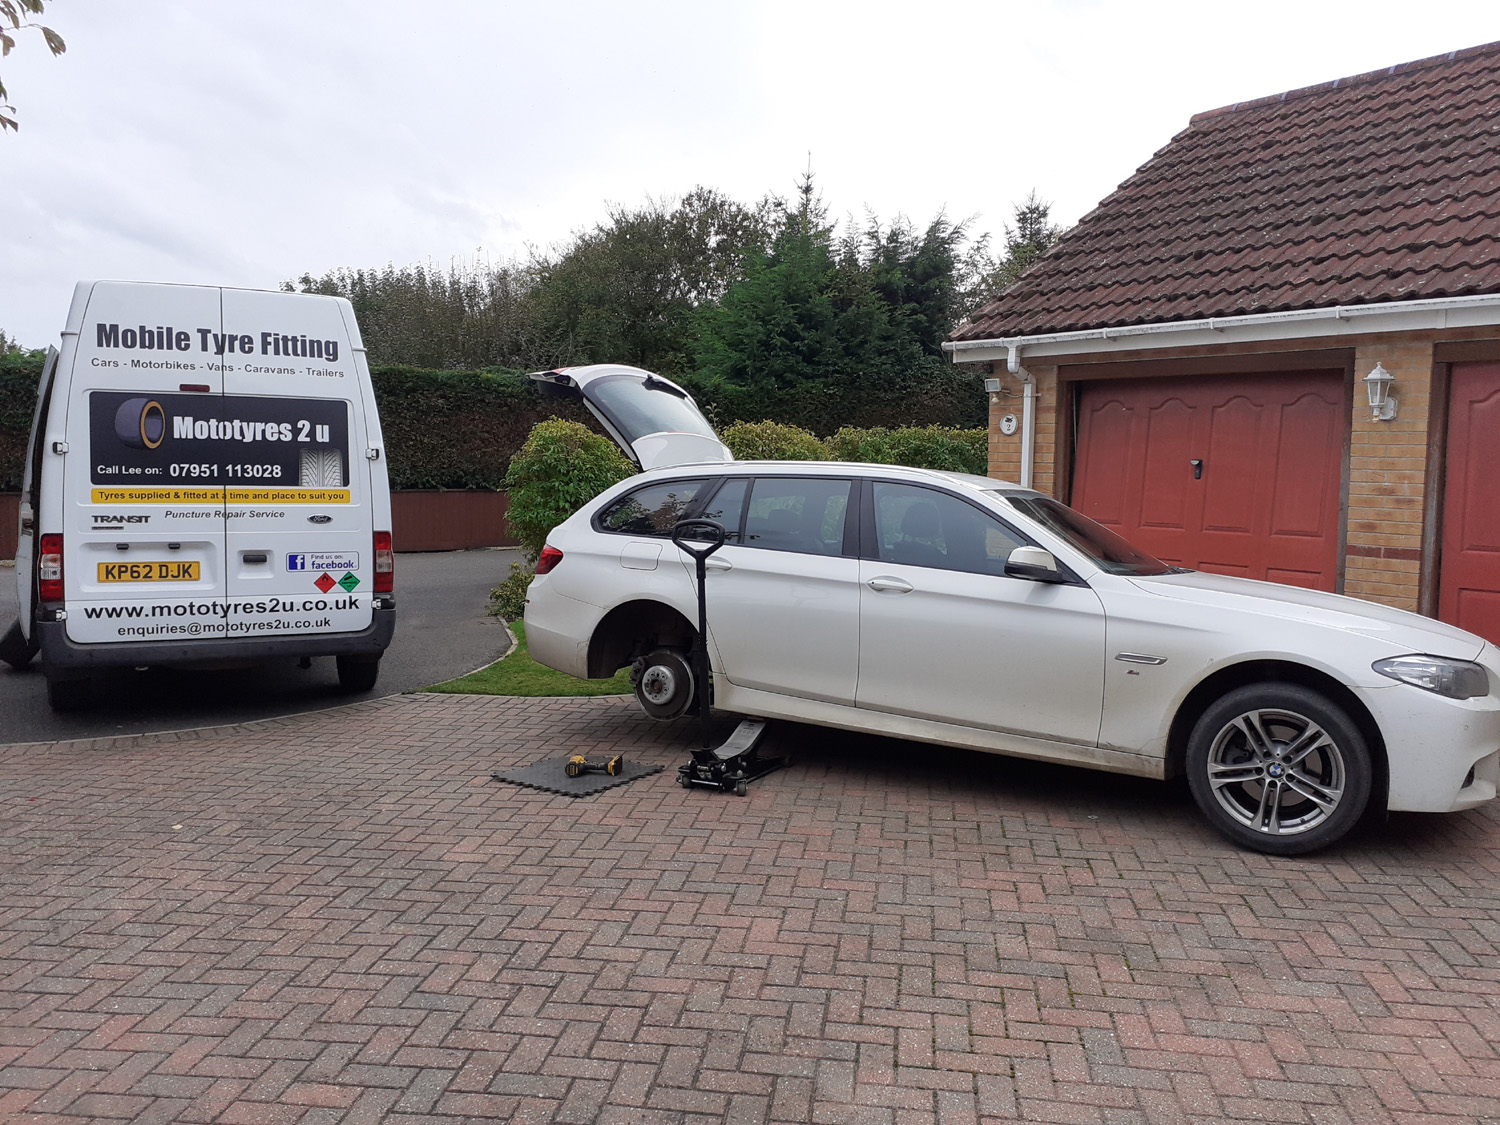 Mototyres 2 u Mobile Tyre fitting Lincolnshire Holbeach Tyres white bmw estate on drive